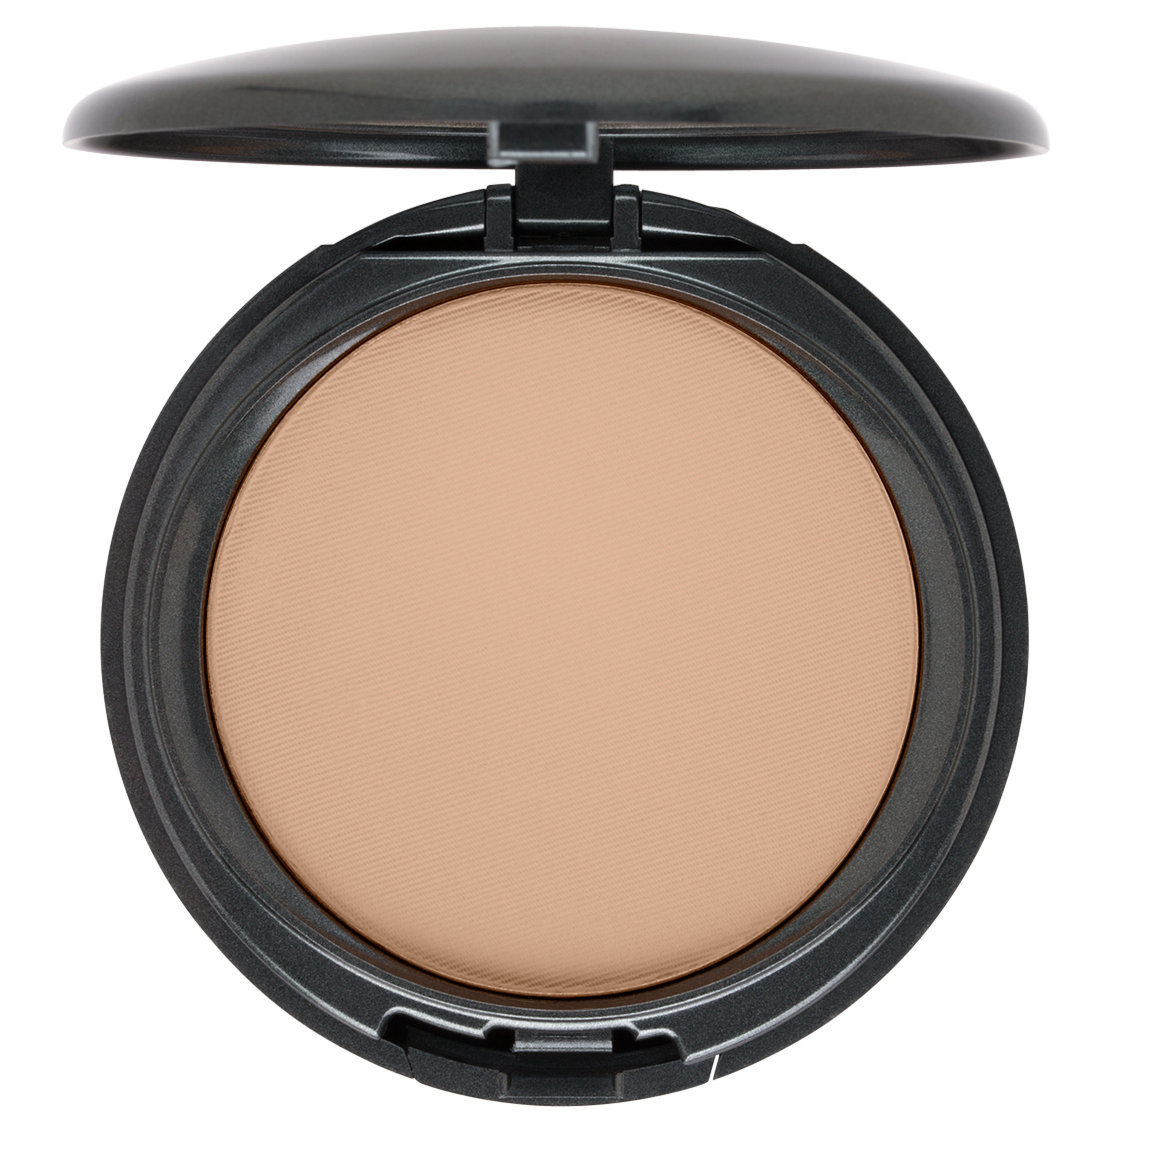 COVER | FX Pressed Mineral Foundation P20 product swatch.